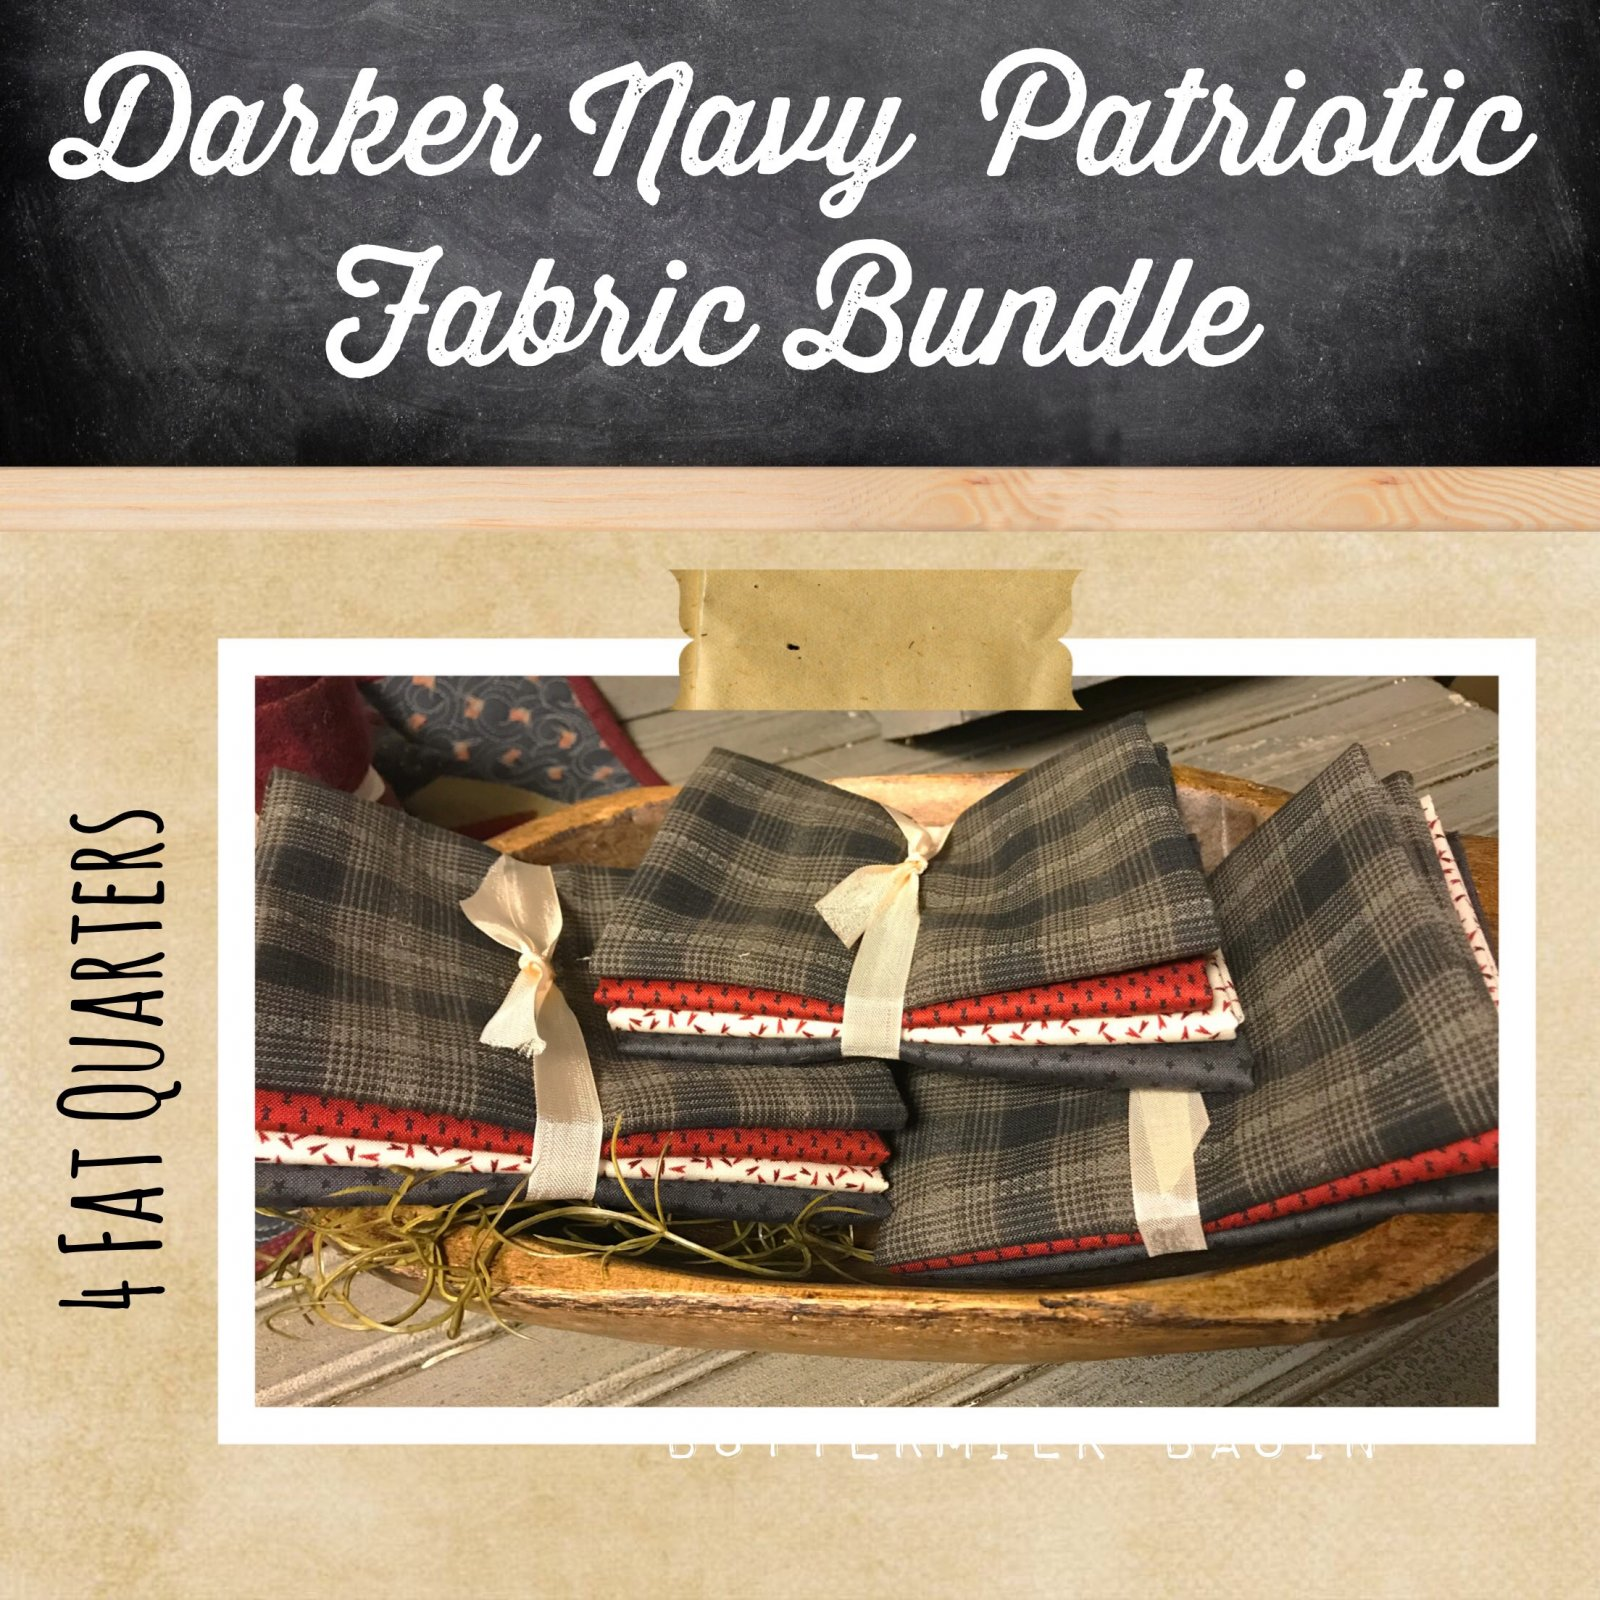 Darker Navy Patriotic Fabric Bundle